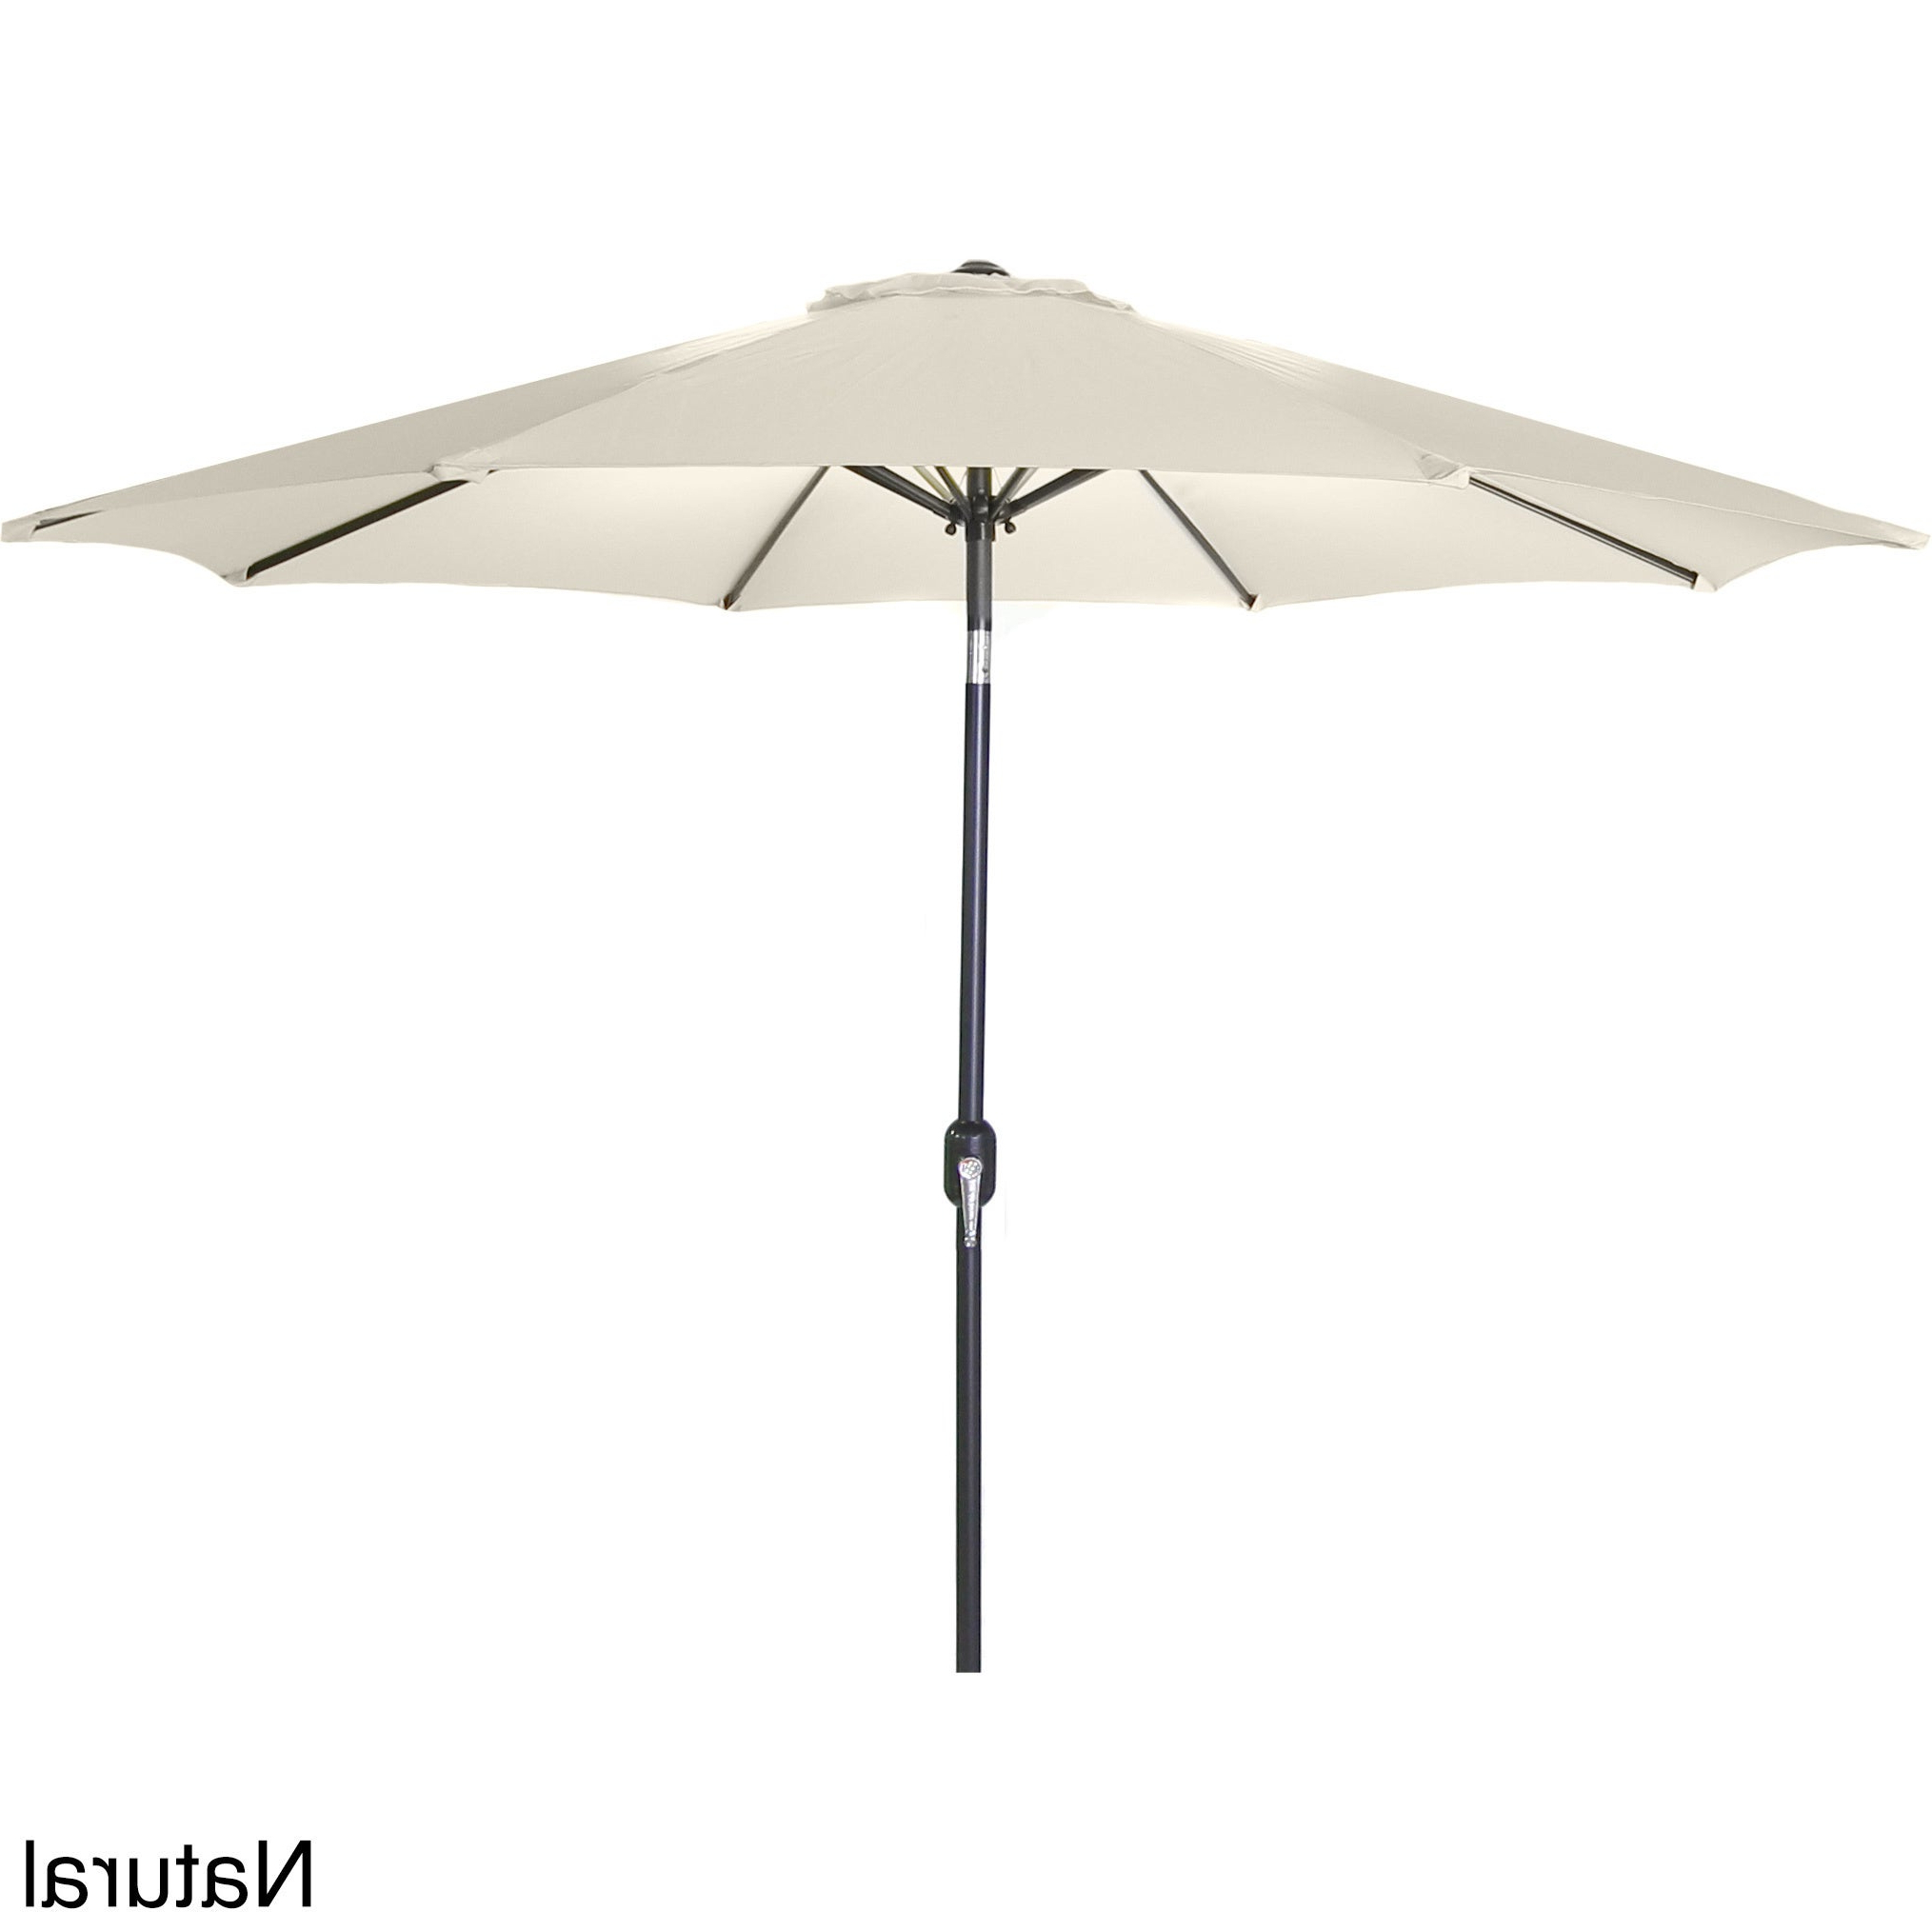 2020 Jordan Manufacturing 9 Foot Steel Market Umbrella Intended For New Haven Market Umbrellas (View 17 of 20)